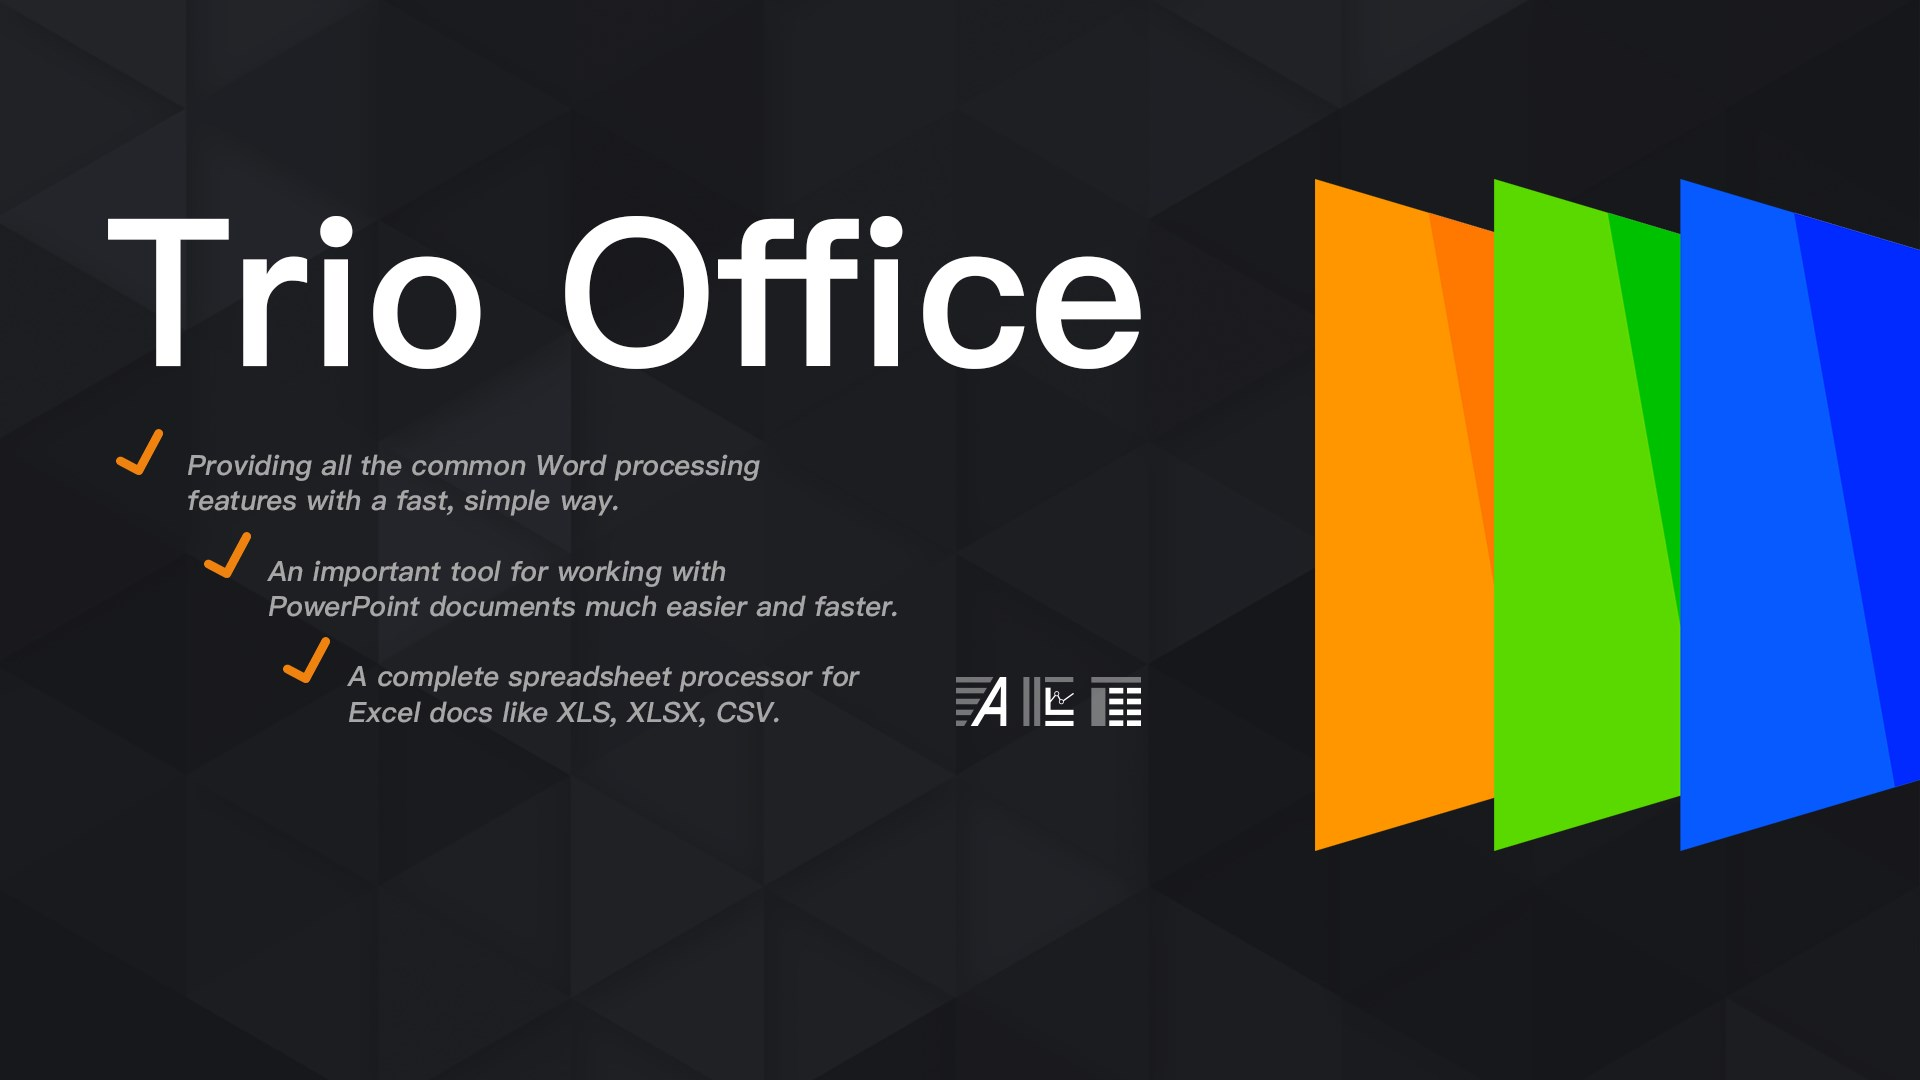 download pacote office 2010 portugues gratis